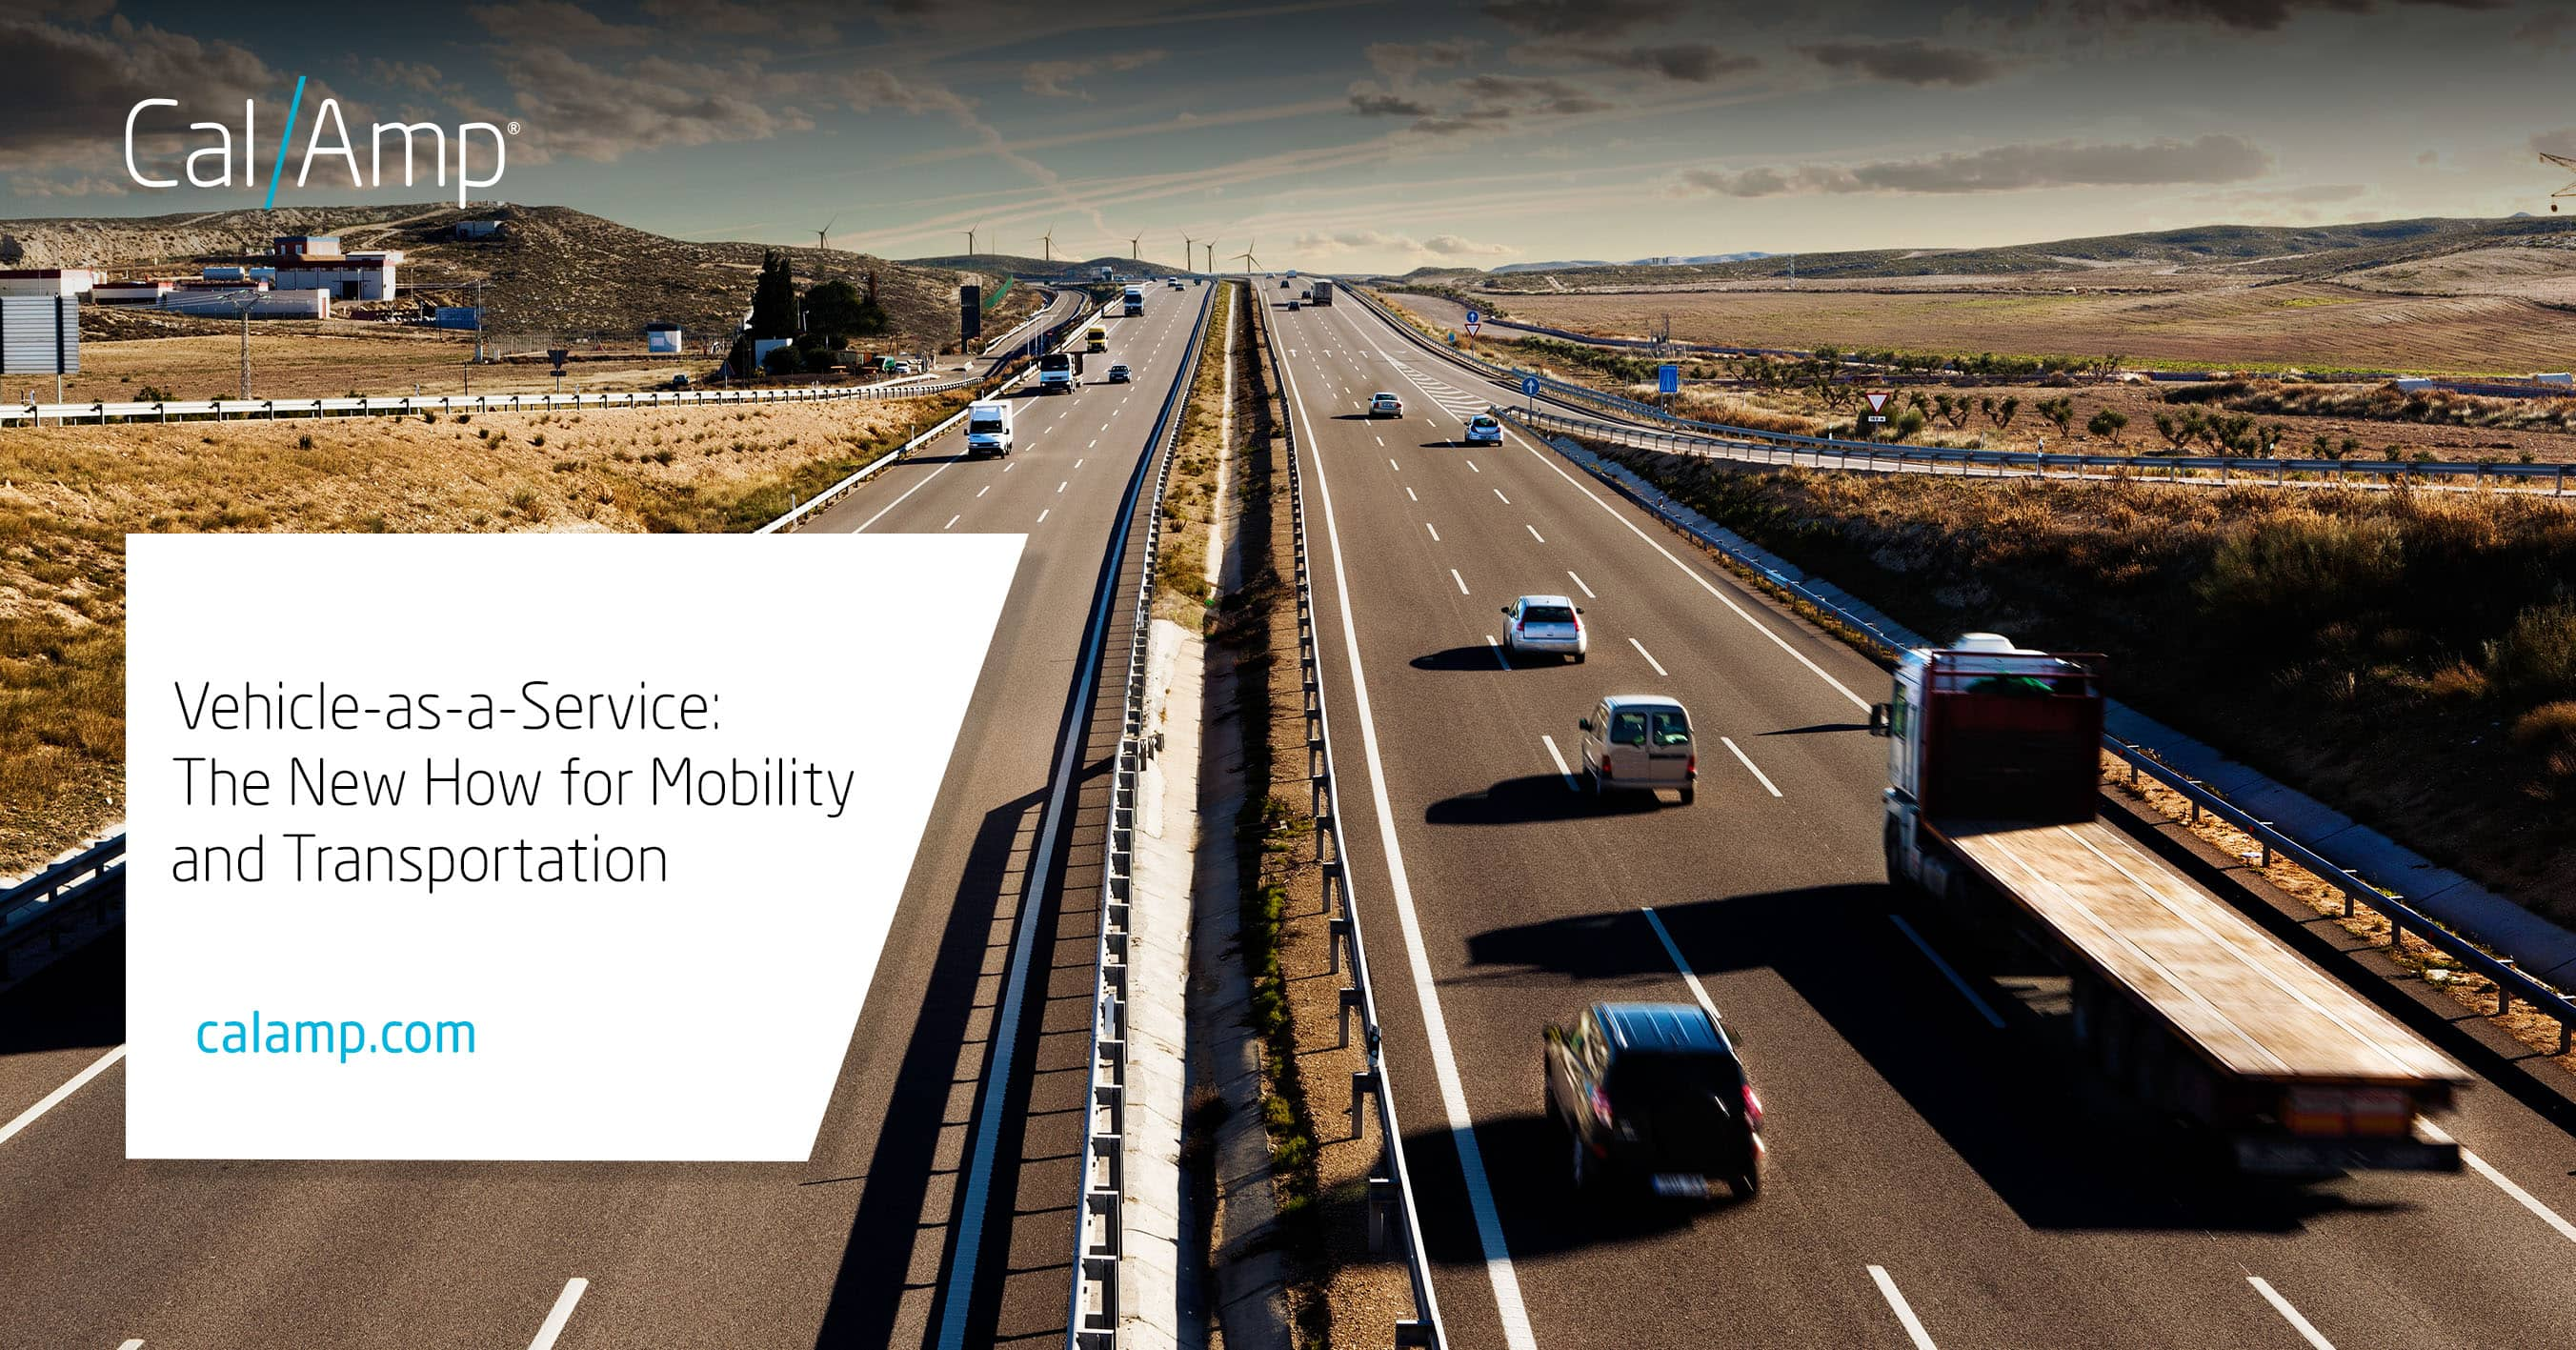 Vehicle-as-a-Service: The New How for Mobility and Transportation